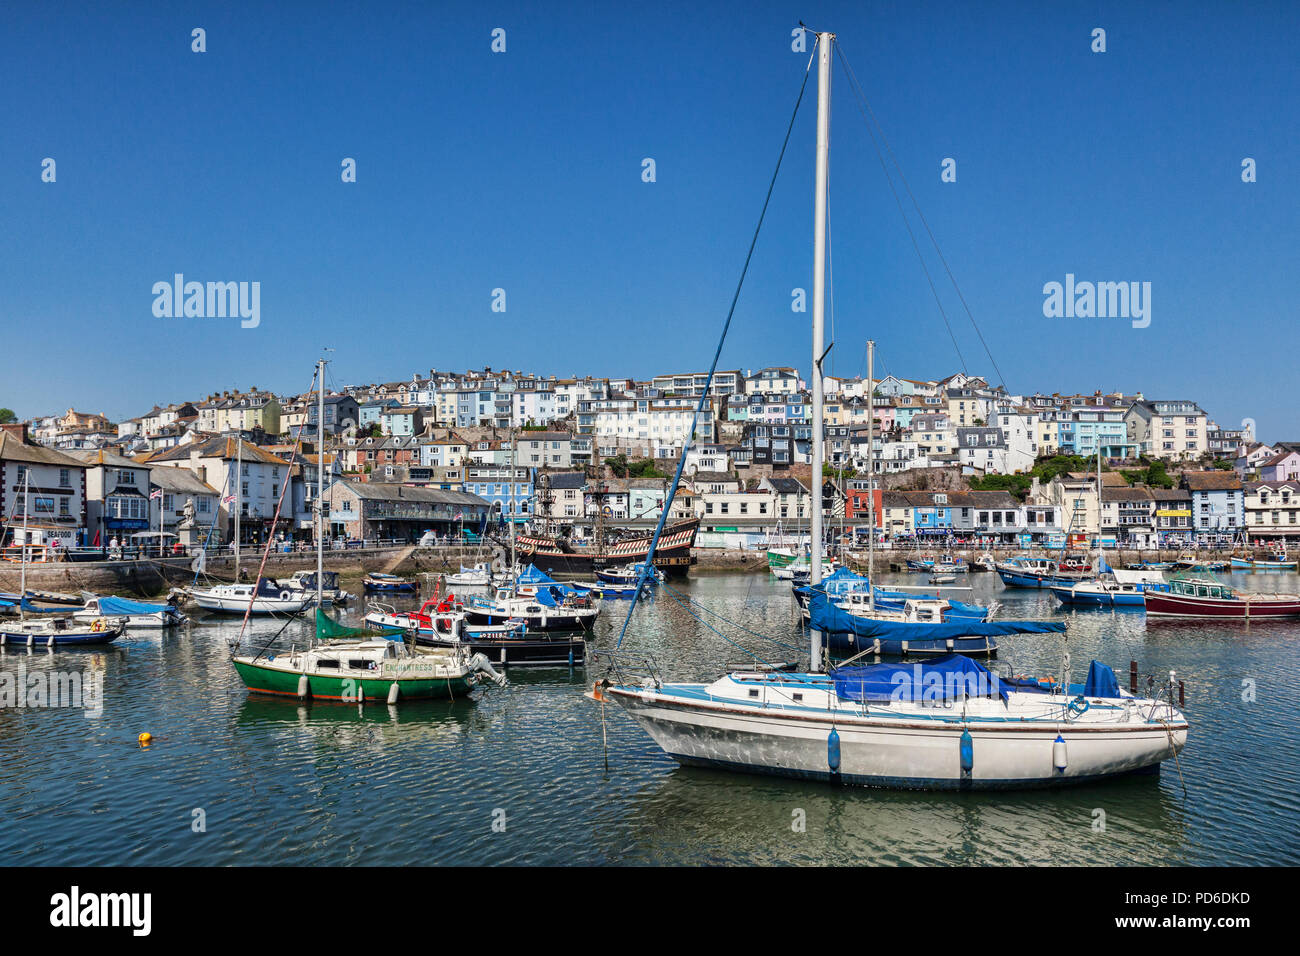 23 May 2018: Brixham, Devon, UK - The harbour with the replica Golden Hind on a fine spring day with clear blue sky. - Stock Image